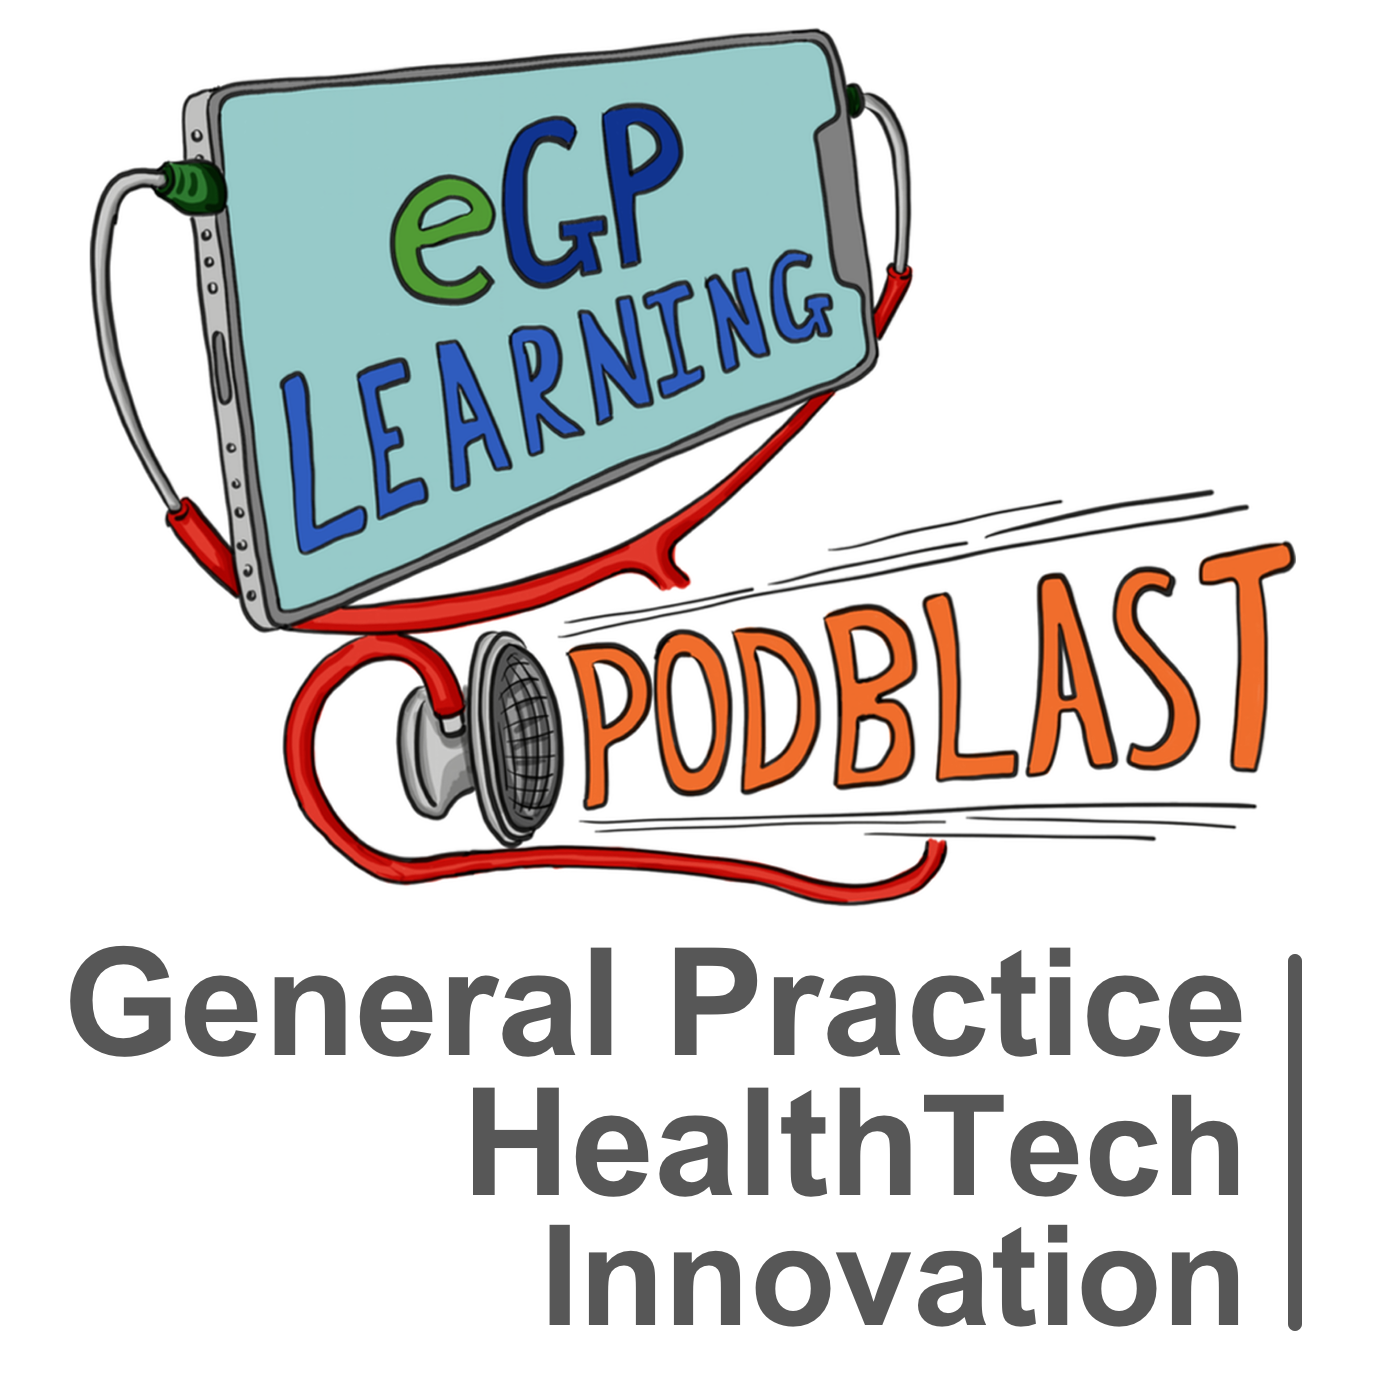 https://itunes.apple.com/gb/podcast/egplearning-podblast/id1325540249?mt=2